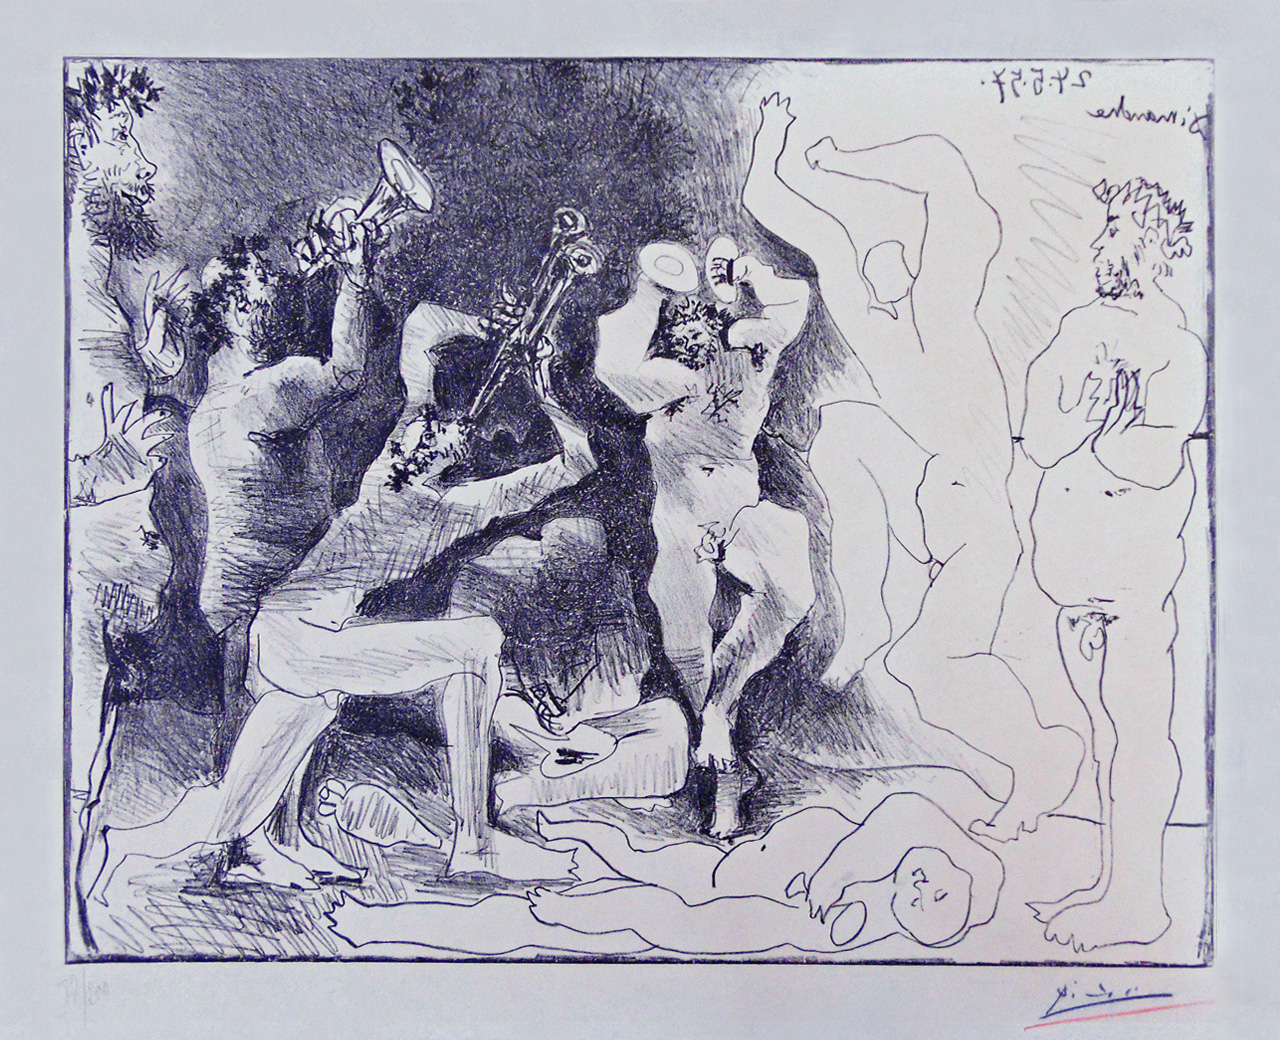 Pablo Picasso, The Dance of the Fauns (La Danse des Faunes), 1957, Lithograph